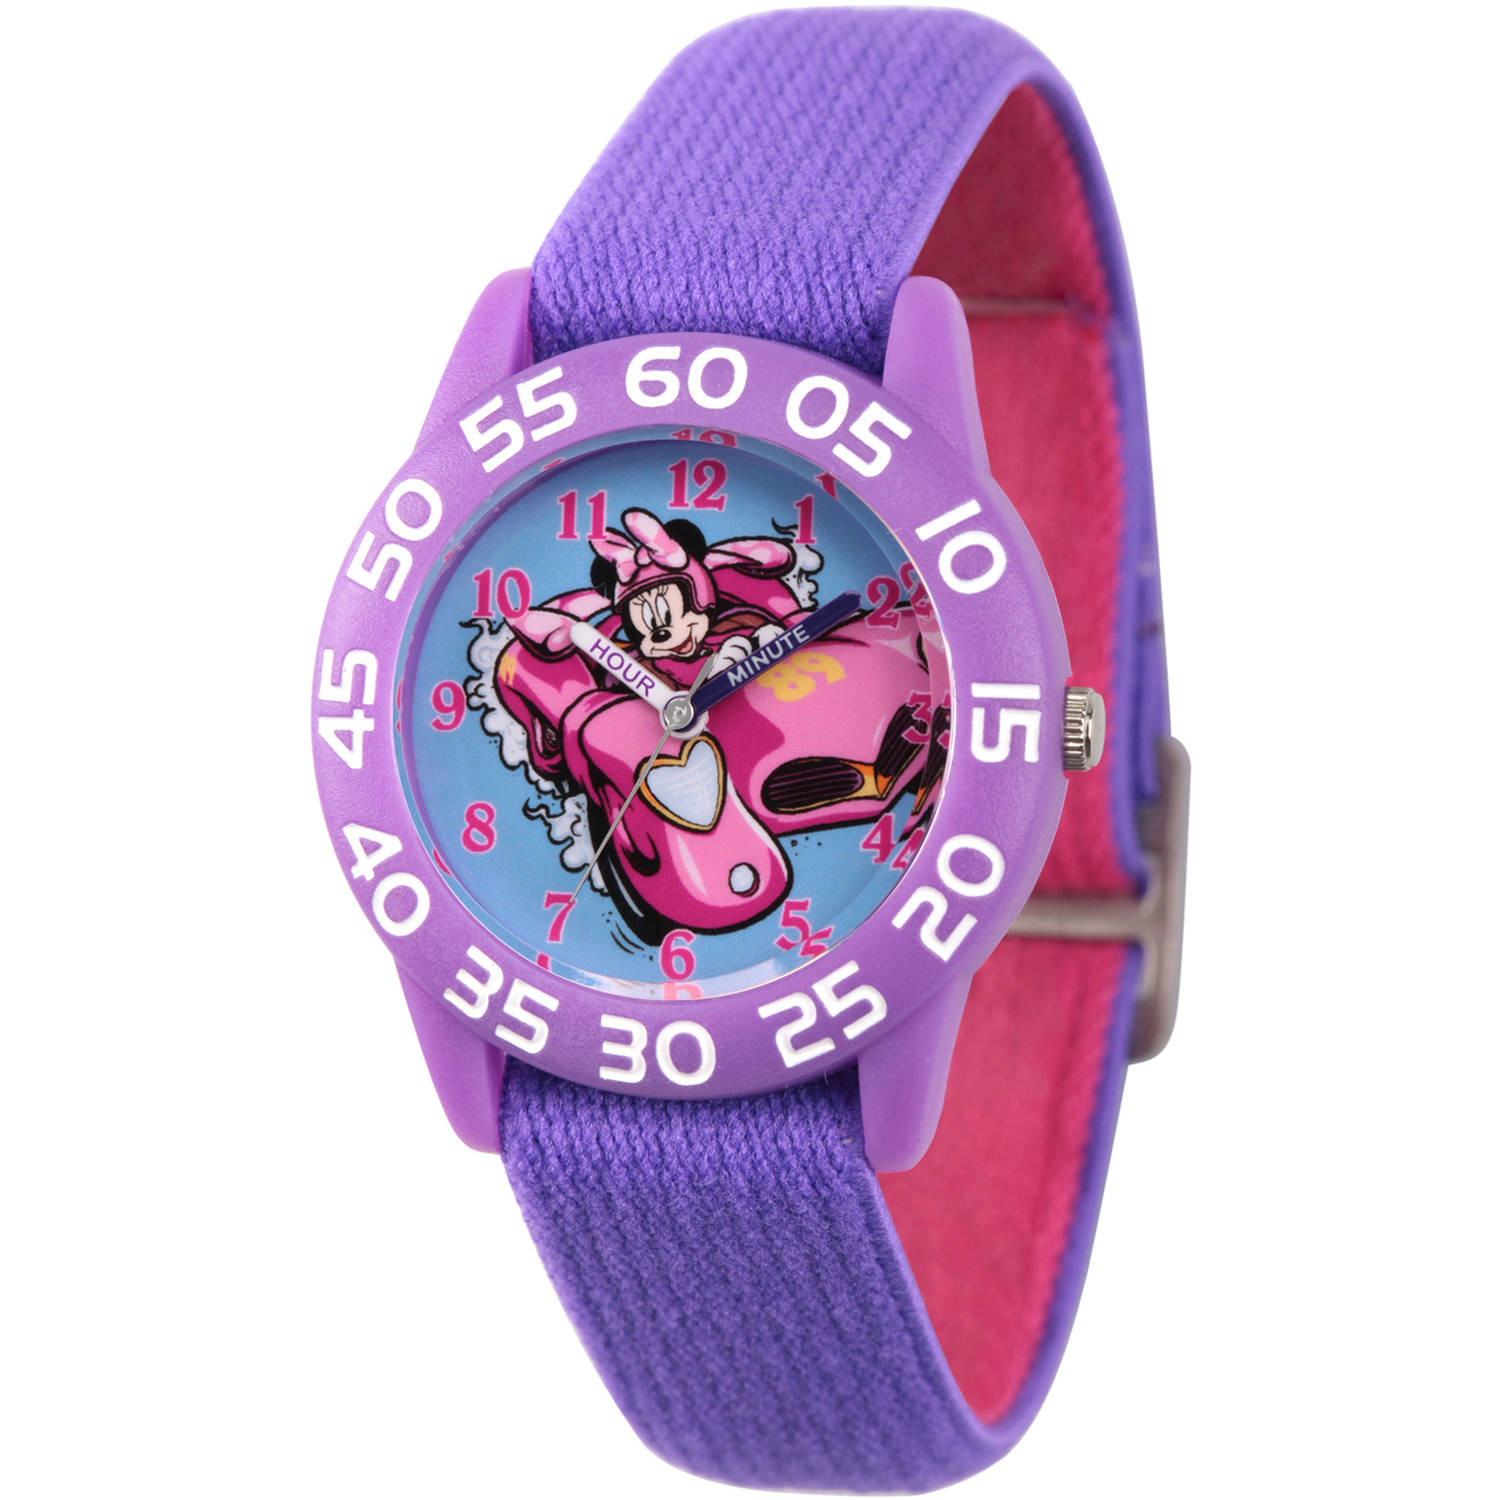 Minnie Mouse Girls' Purple Plastic Time Teacher Watch, Reversible Purple and Pink Nylon Strap